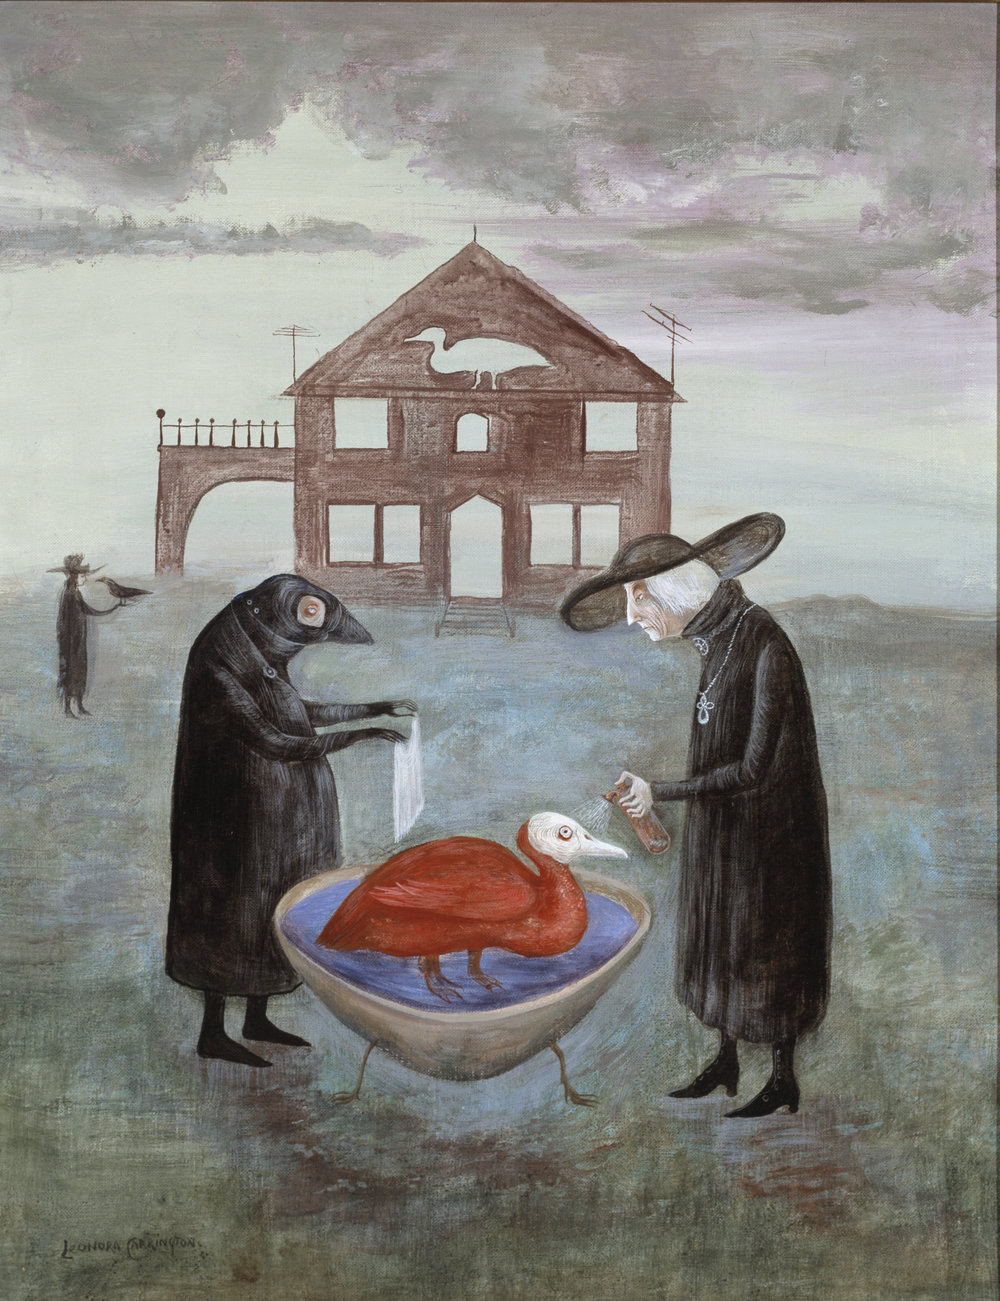 Leonora Carrington,  Bird Bath II,  1978, Acrylic on canvas board, 28 x 22 inches (71 x 56 cm)